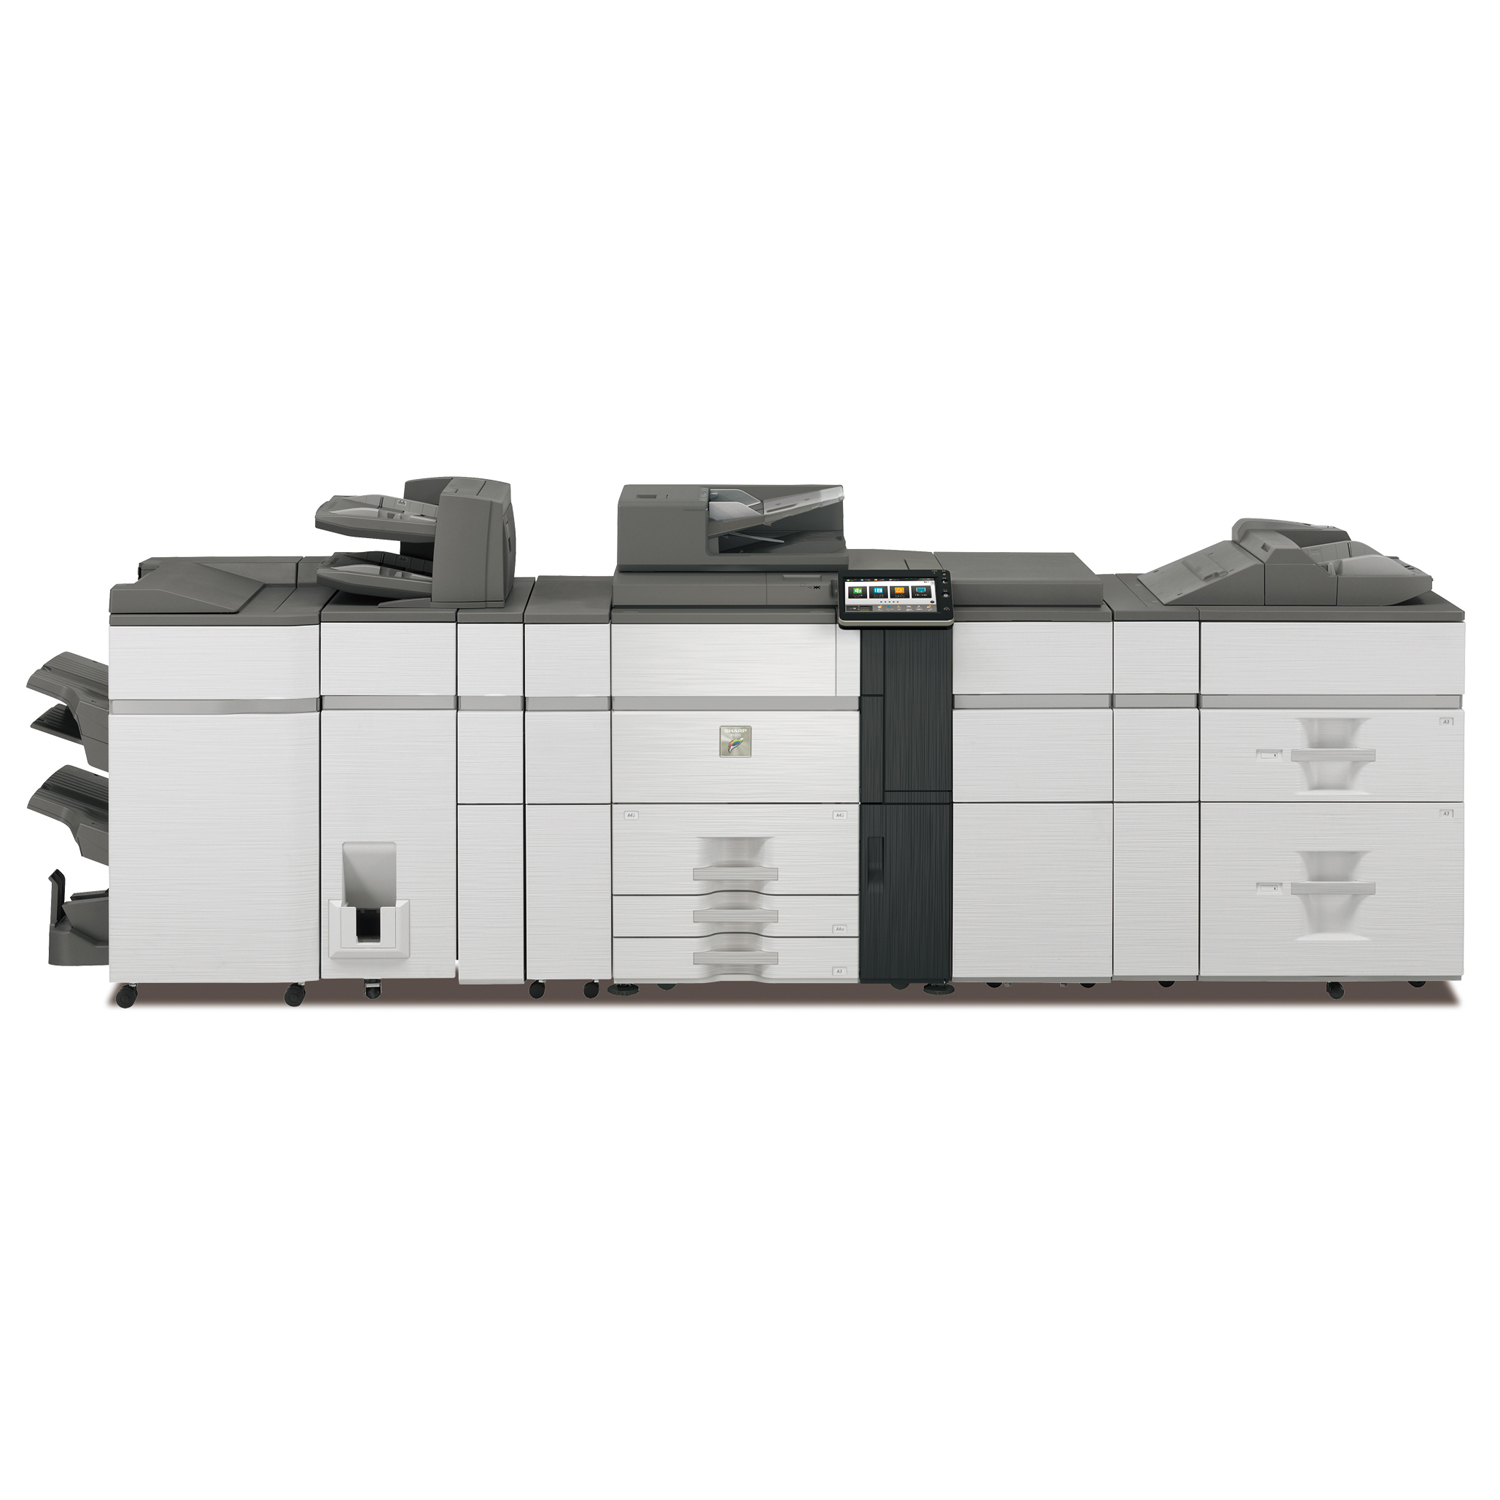 SharpMX-8081 Color Laser MFP, Refurbished (MX-8081)